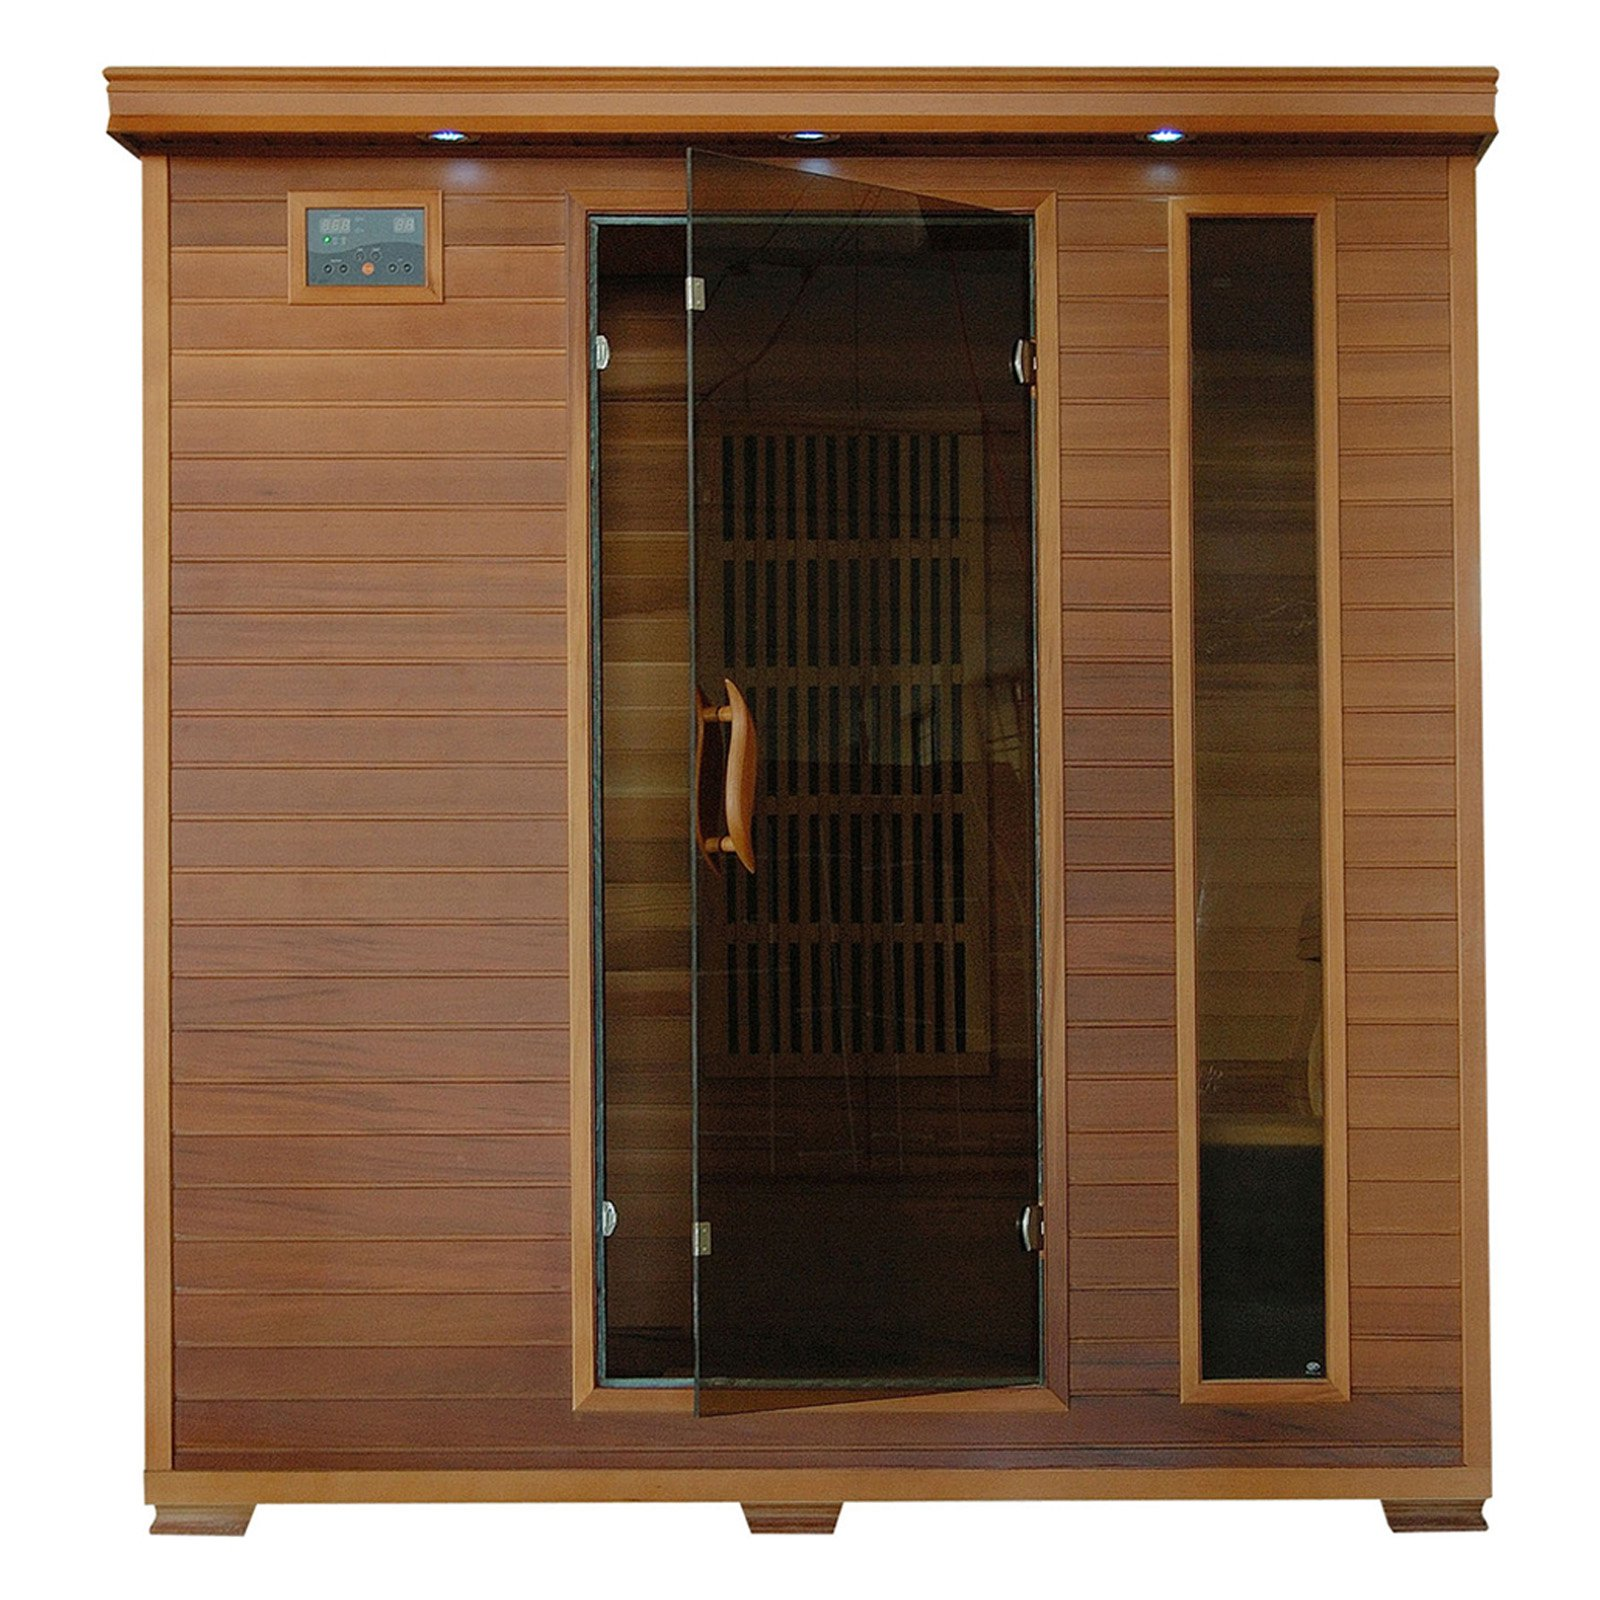 Radiant Sauna 4 Person Cedar Infrared Sauna by Blue Wave Products Inc